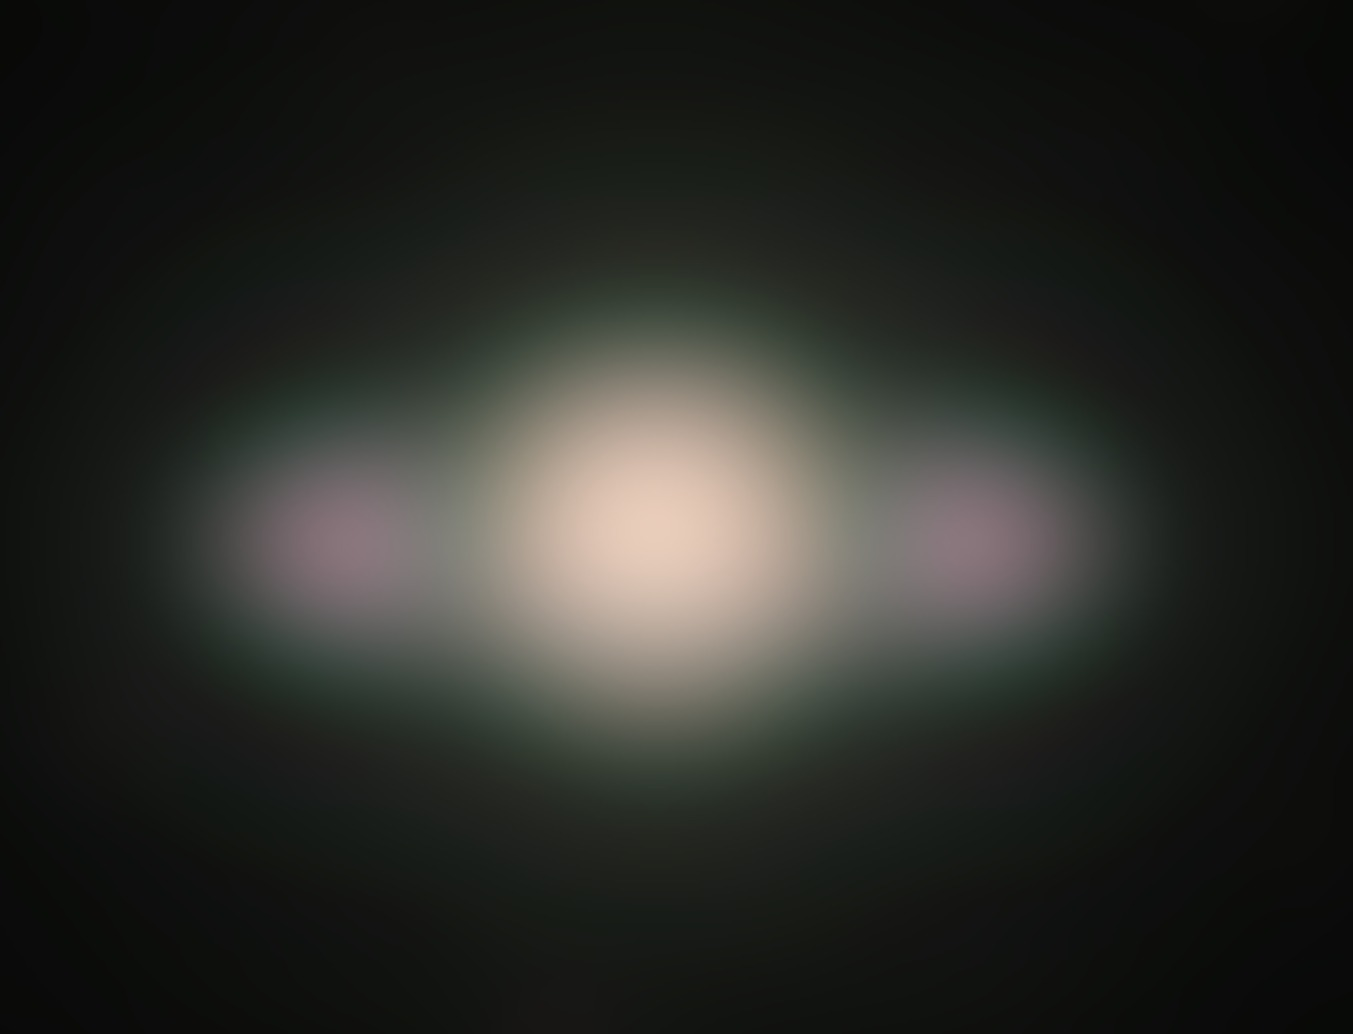 An approximation of what Galileo would have seen in 1610. http://www.astromatic.net/2009/05/23/see-saturn-as-galileo-did